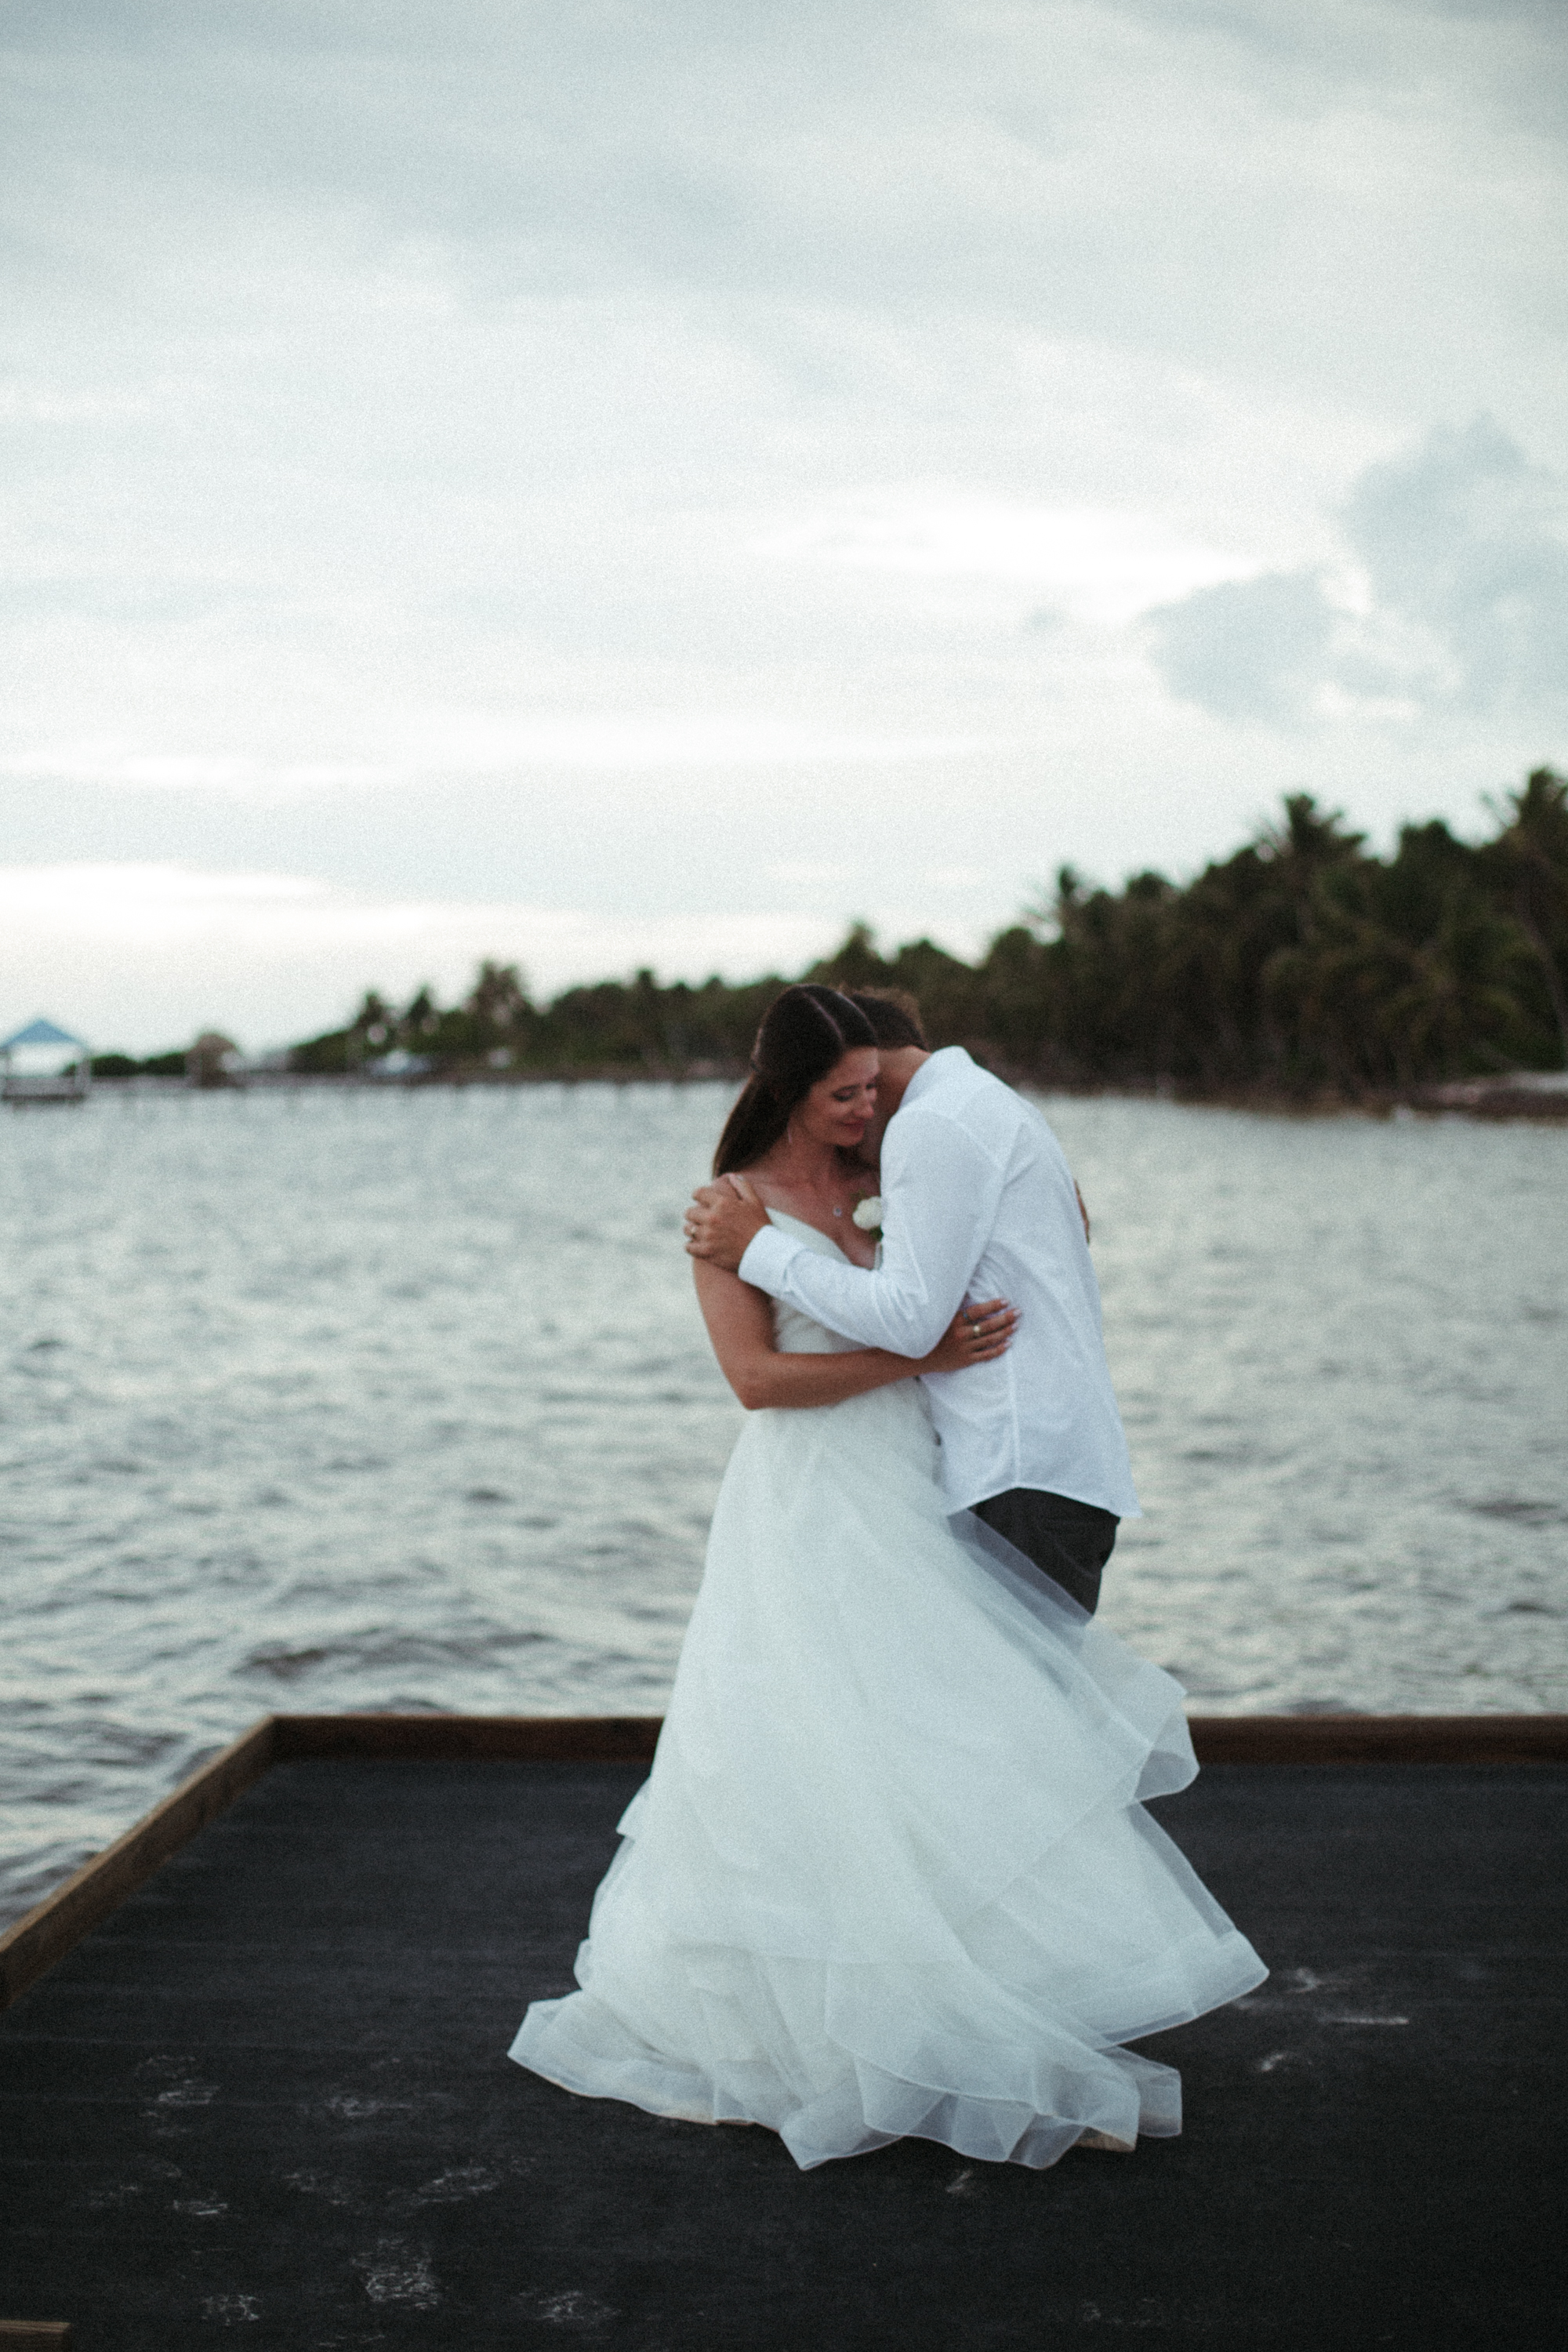 san-pescador-belize-wedding-christinemariephoto-j-k-132.jpg